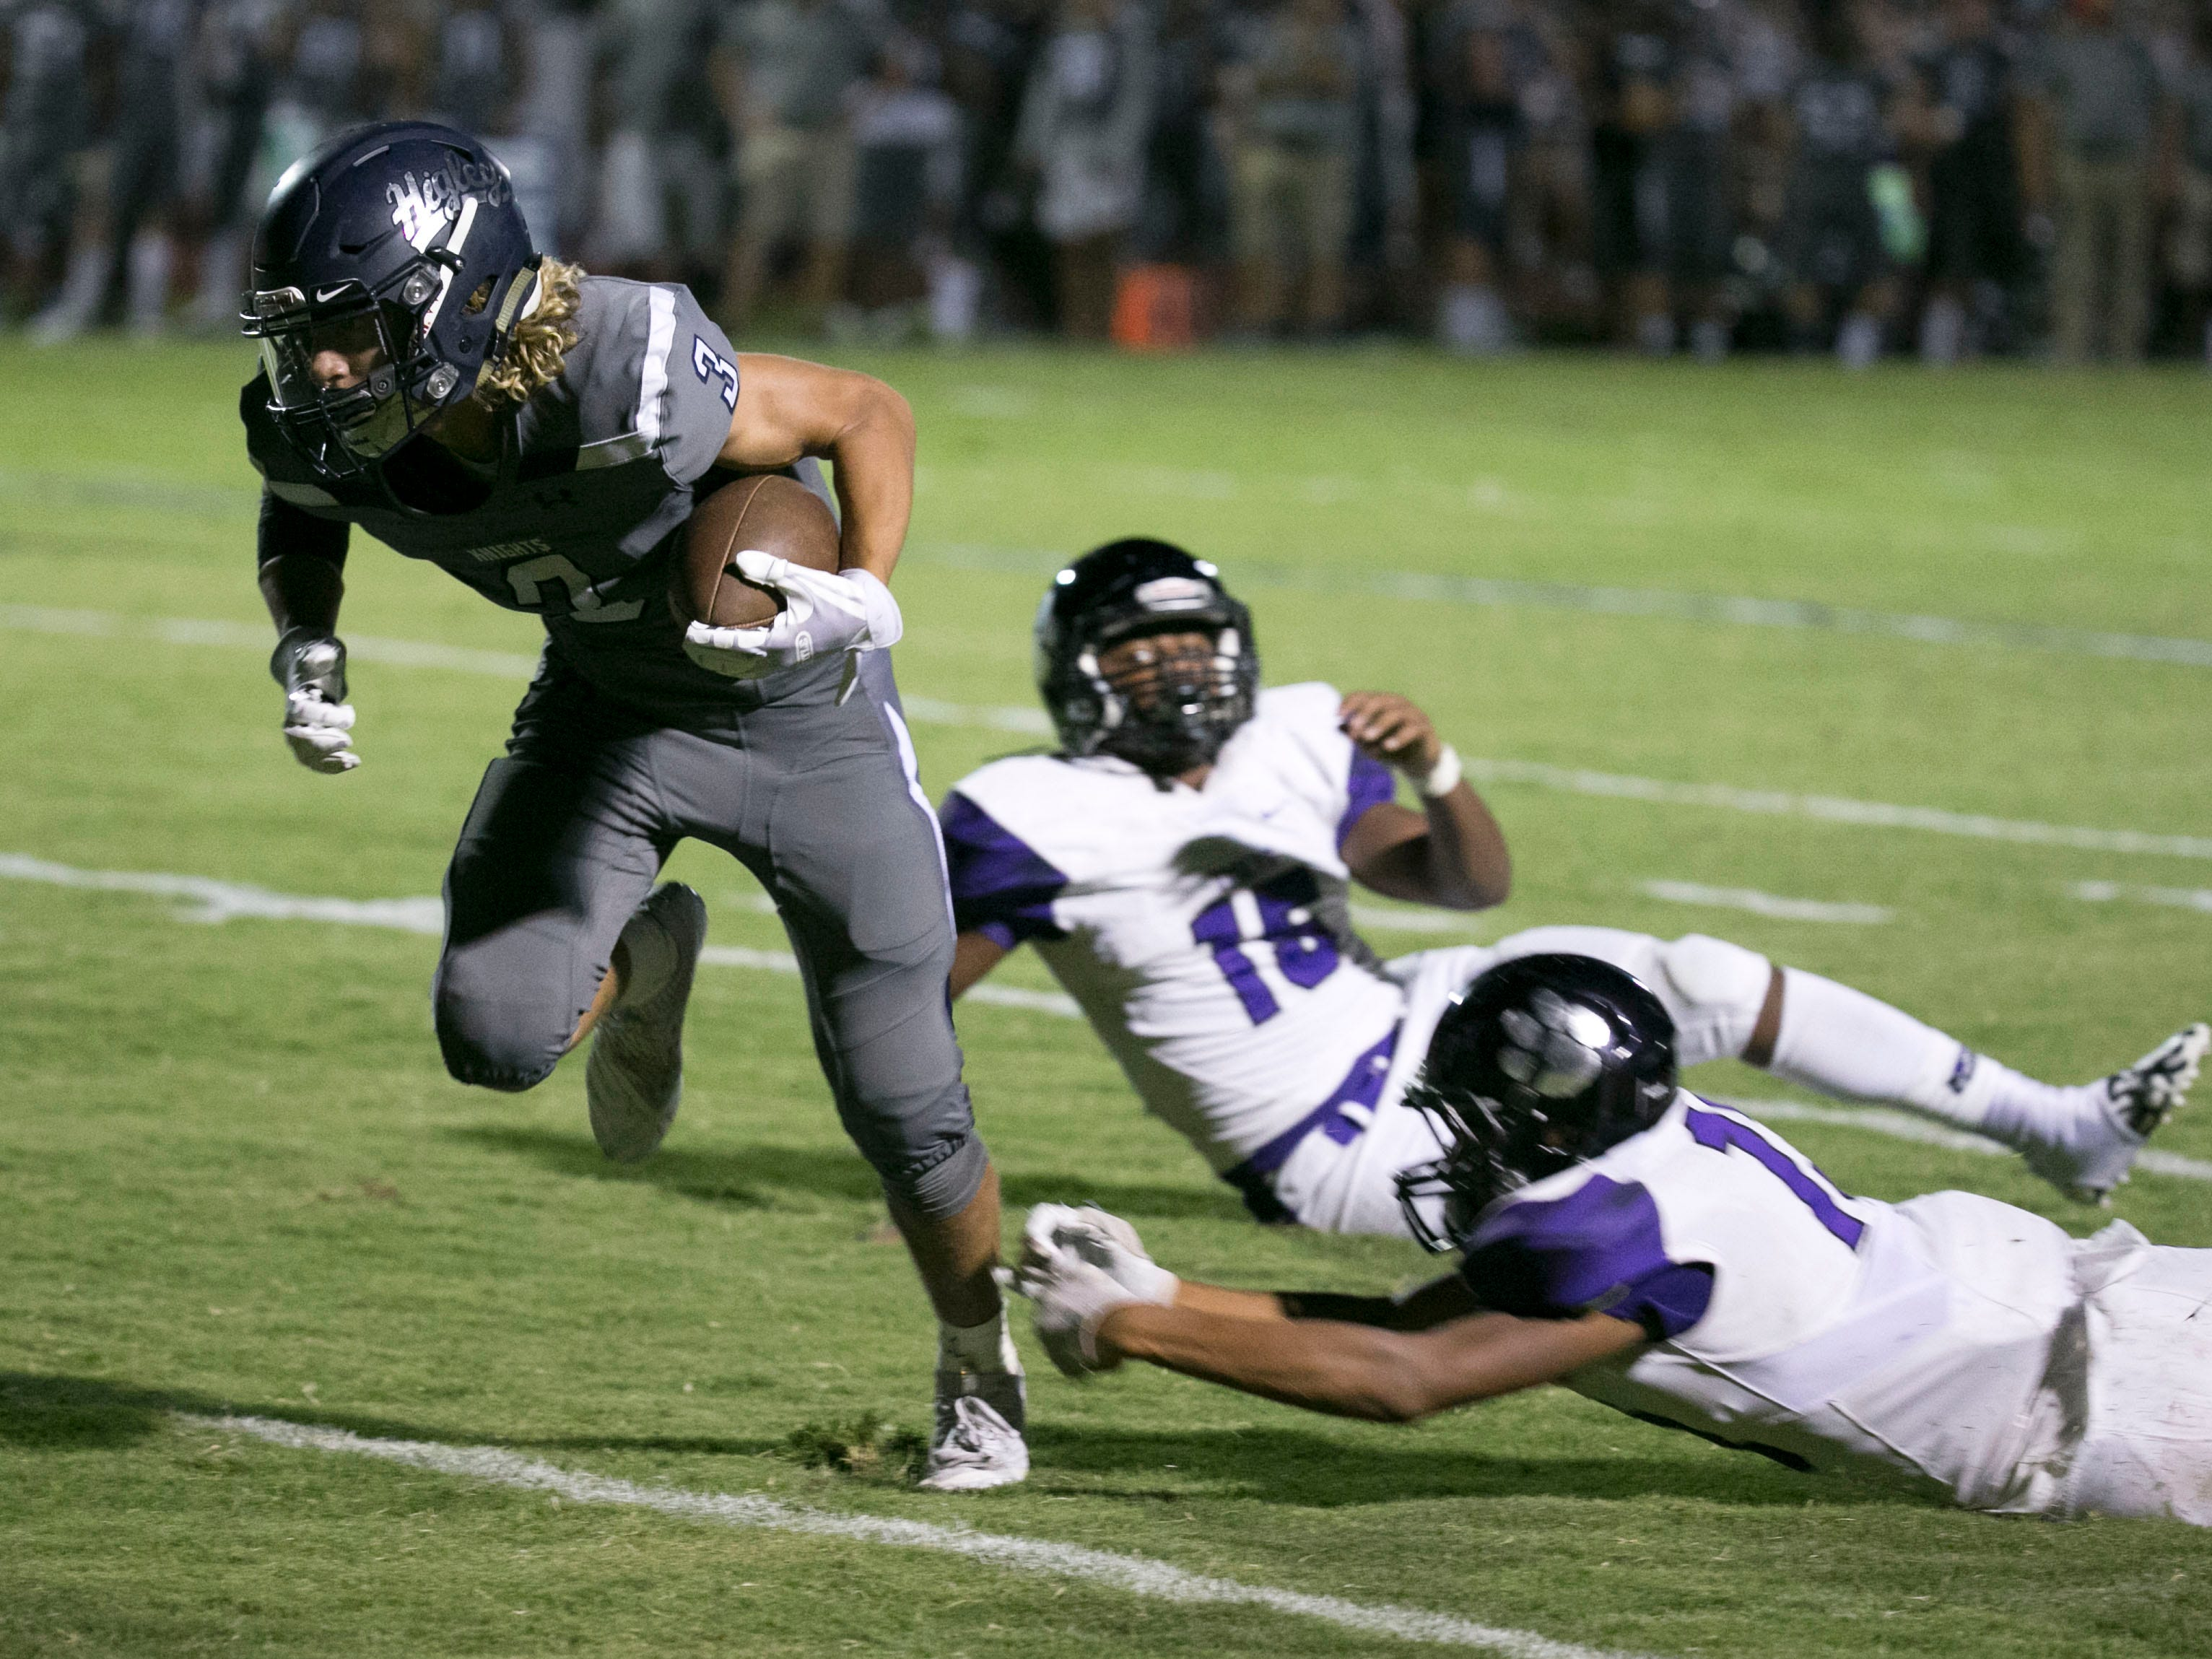 Higley High receiver Coleman Owen carries the ball past  Millennium High tacklers on his way to a touchdown during the third quarter of the high school football game at Higley High in Gilbert on Friday evening, September 14, 2018.